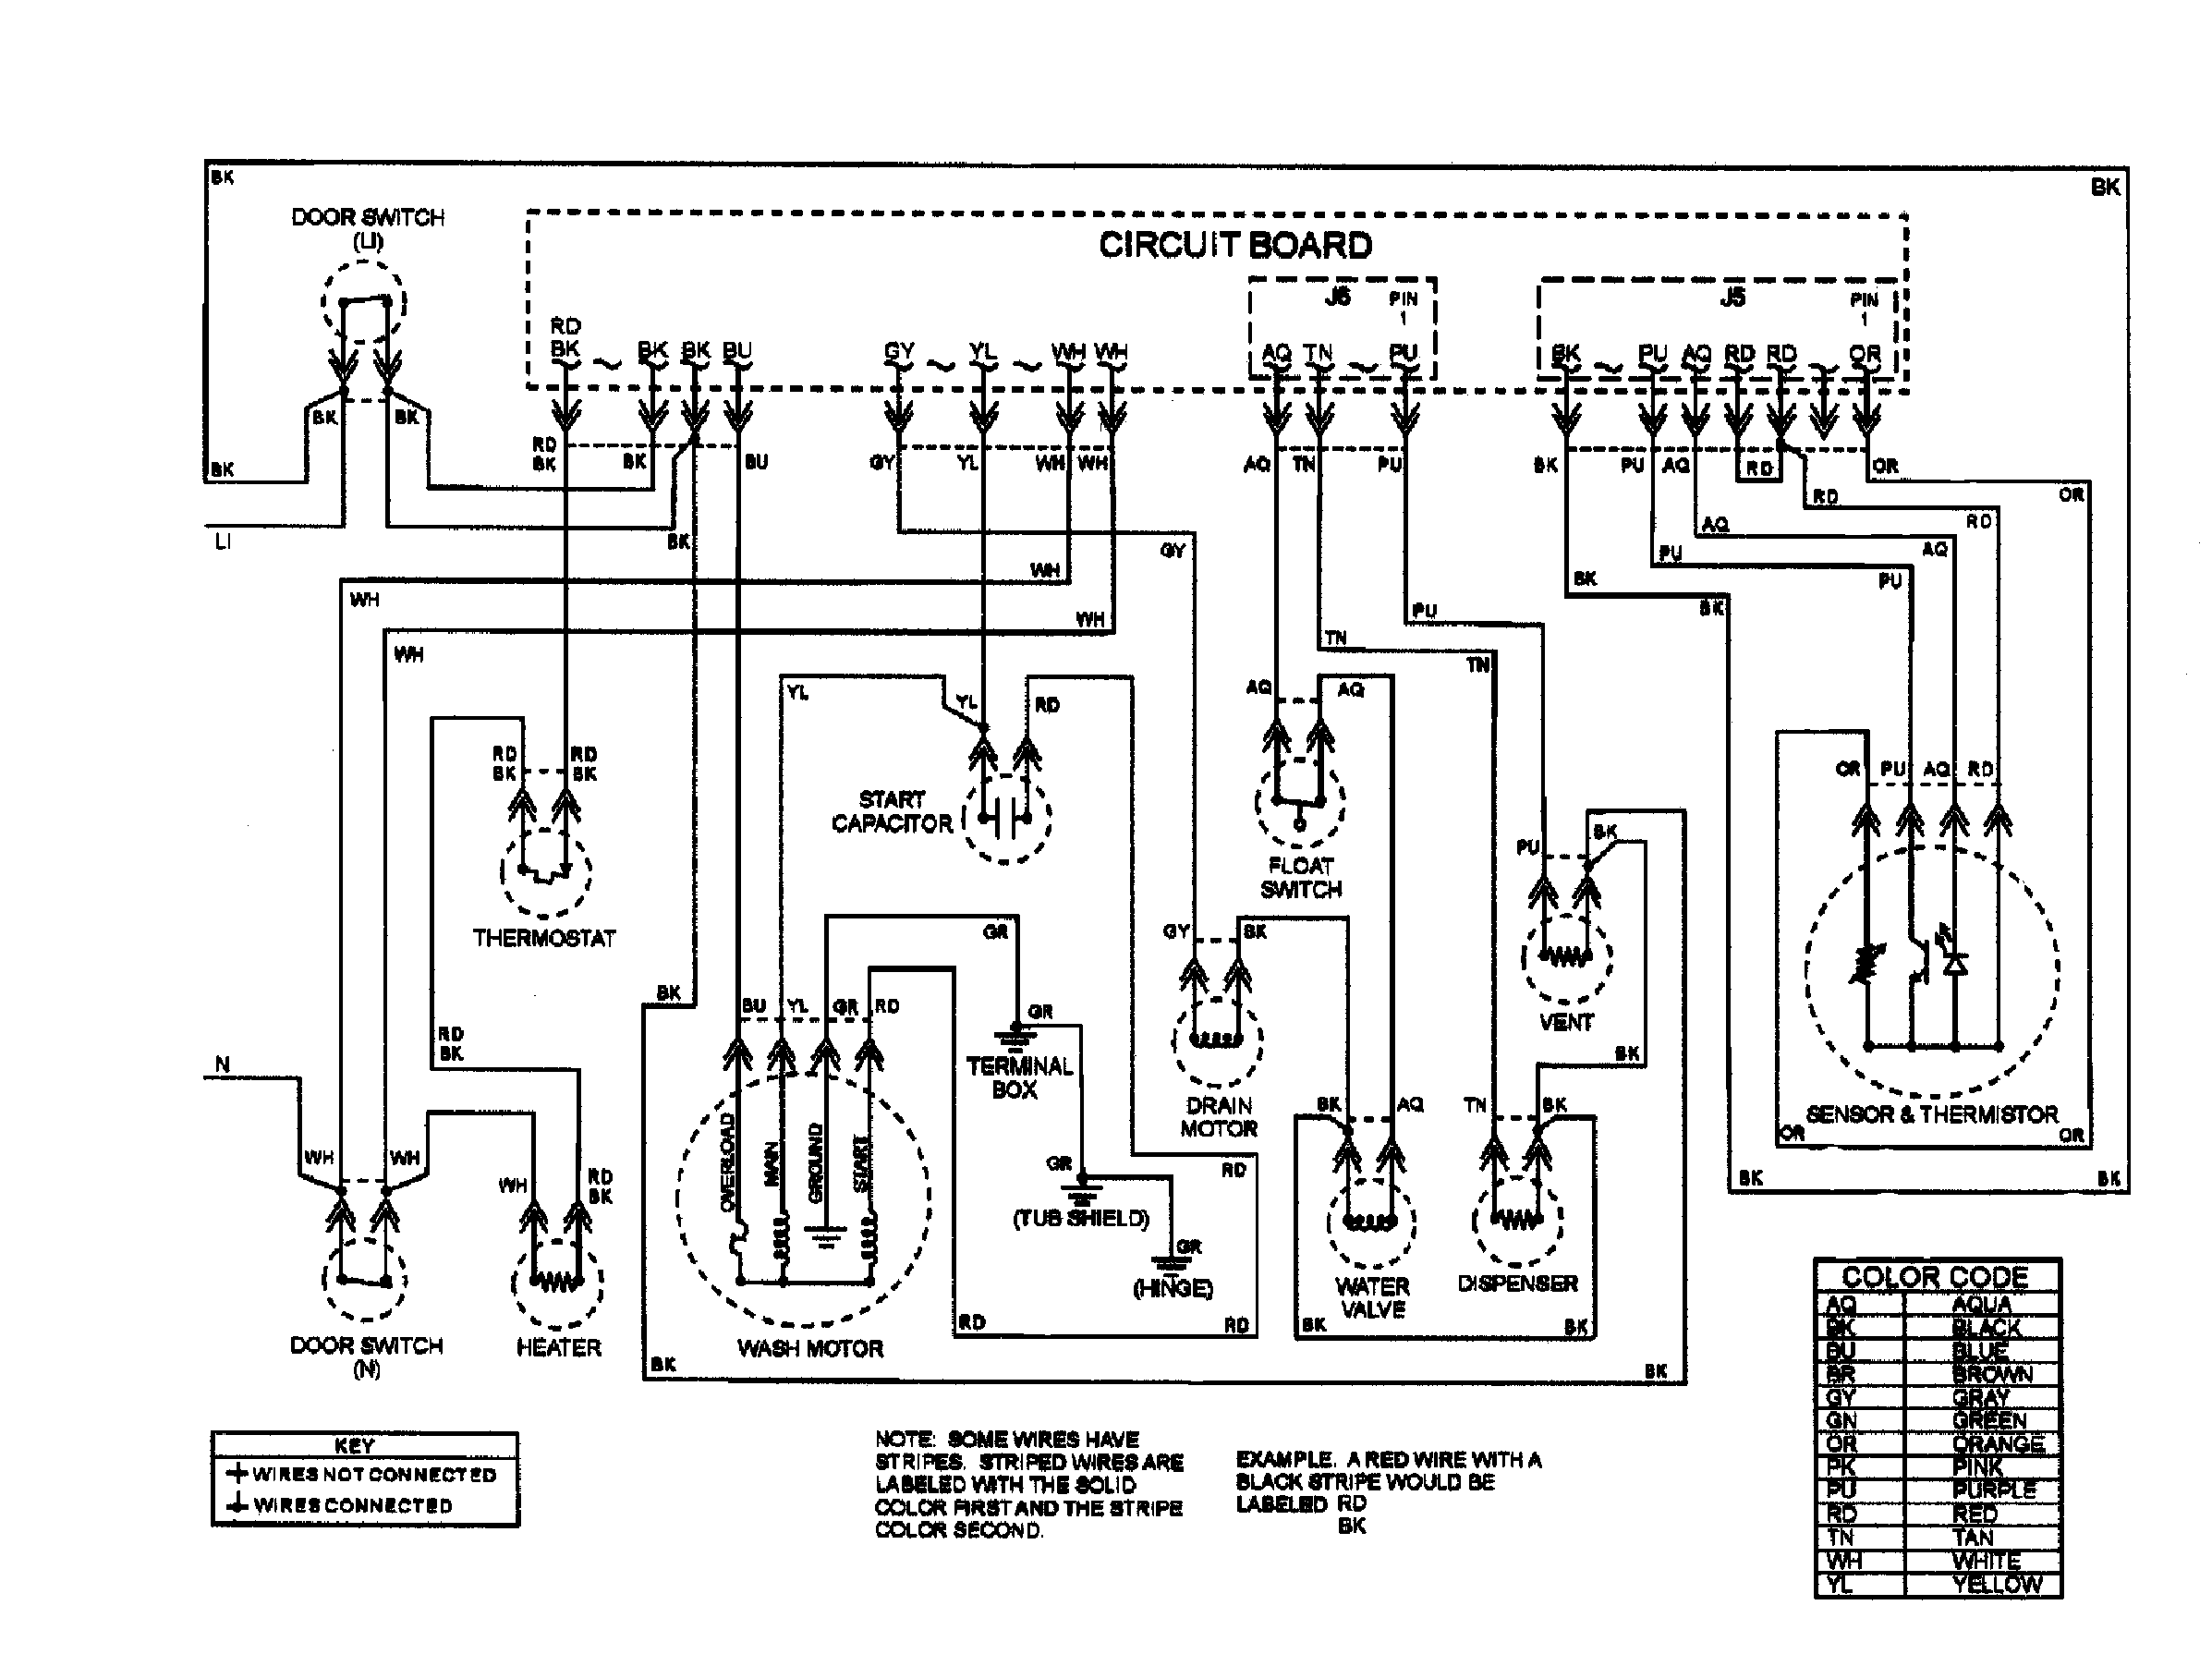 Funky Rmk Wiring Schematic Image - Wiring Diagram Ideas - guapodugh.com